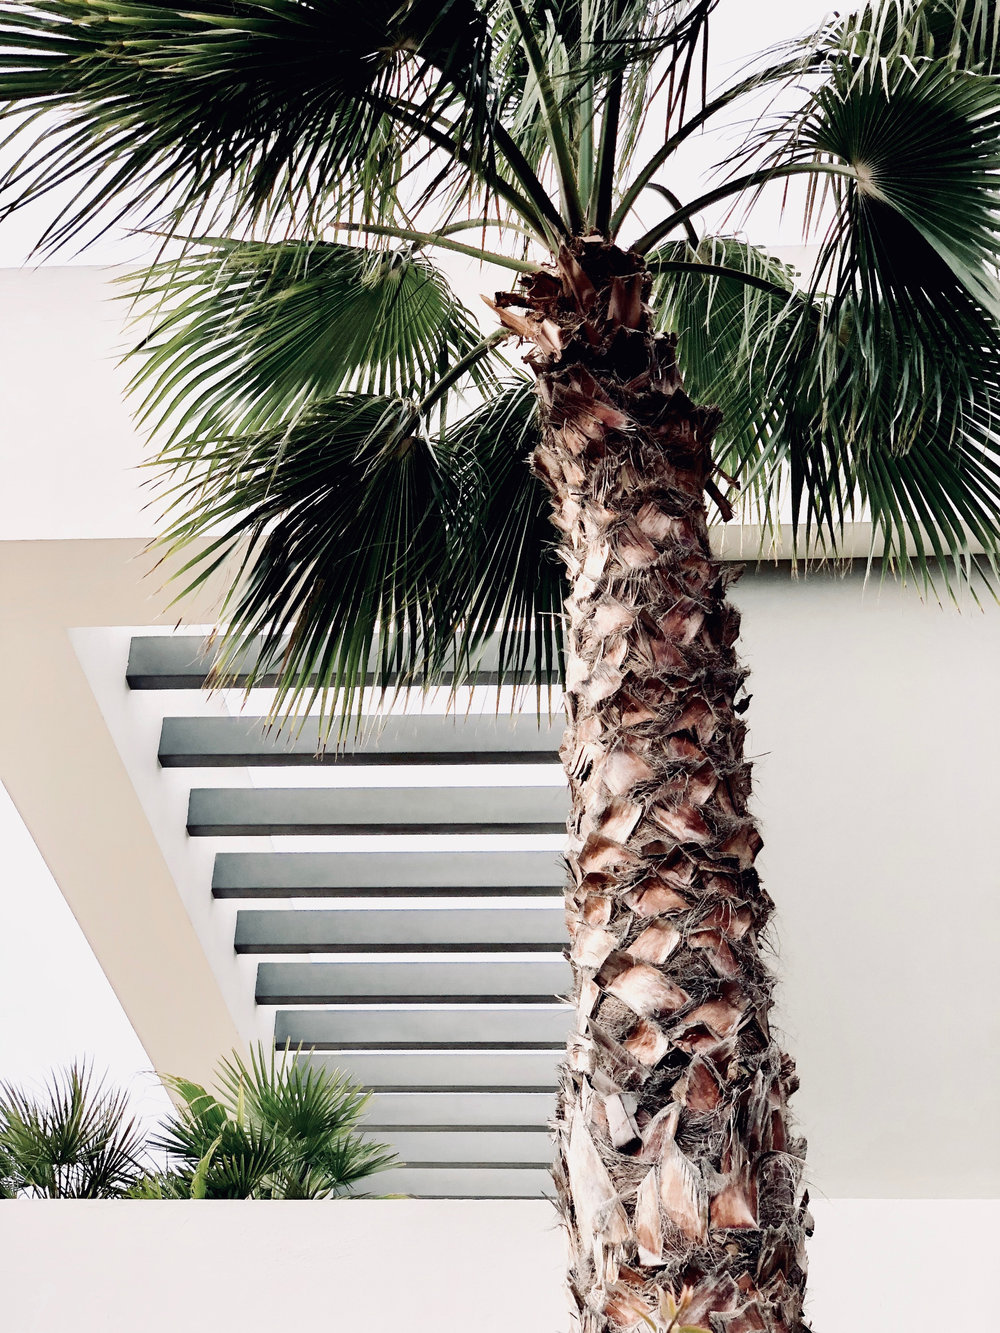 palm_tree_pruning_tips.jpg